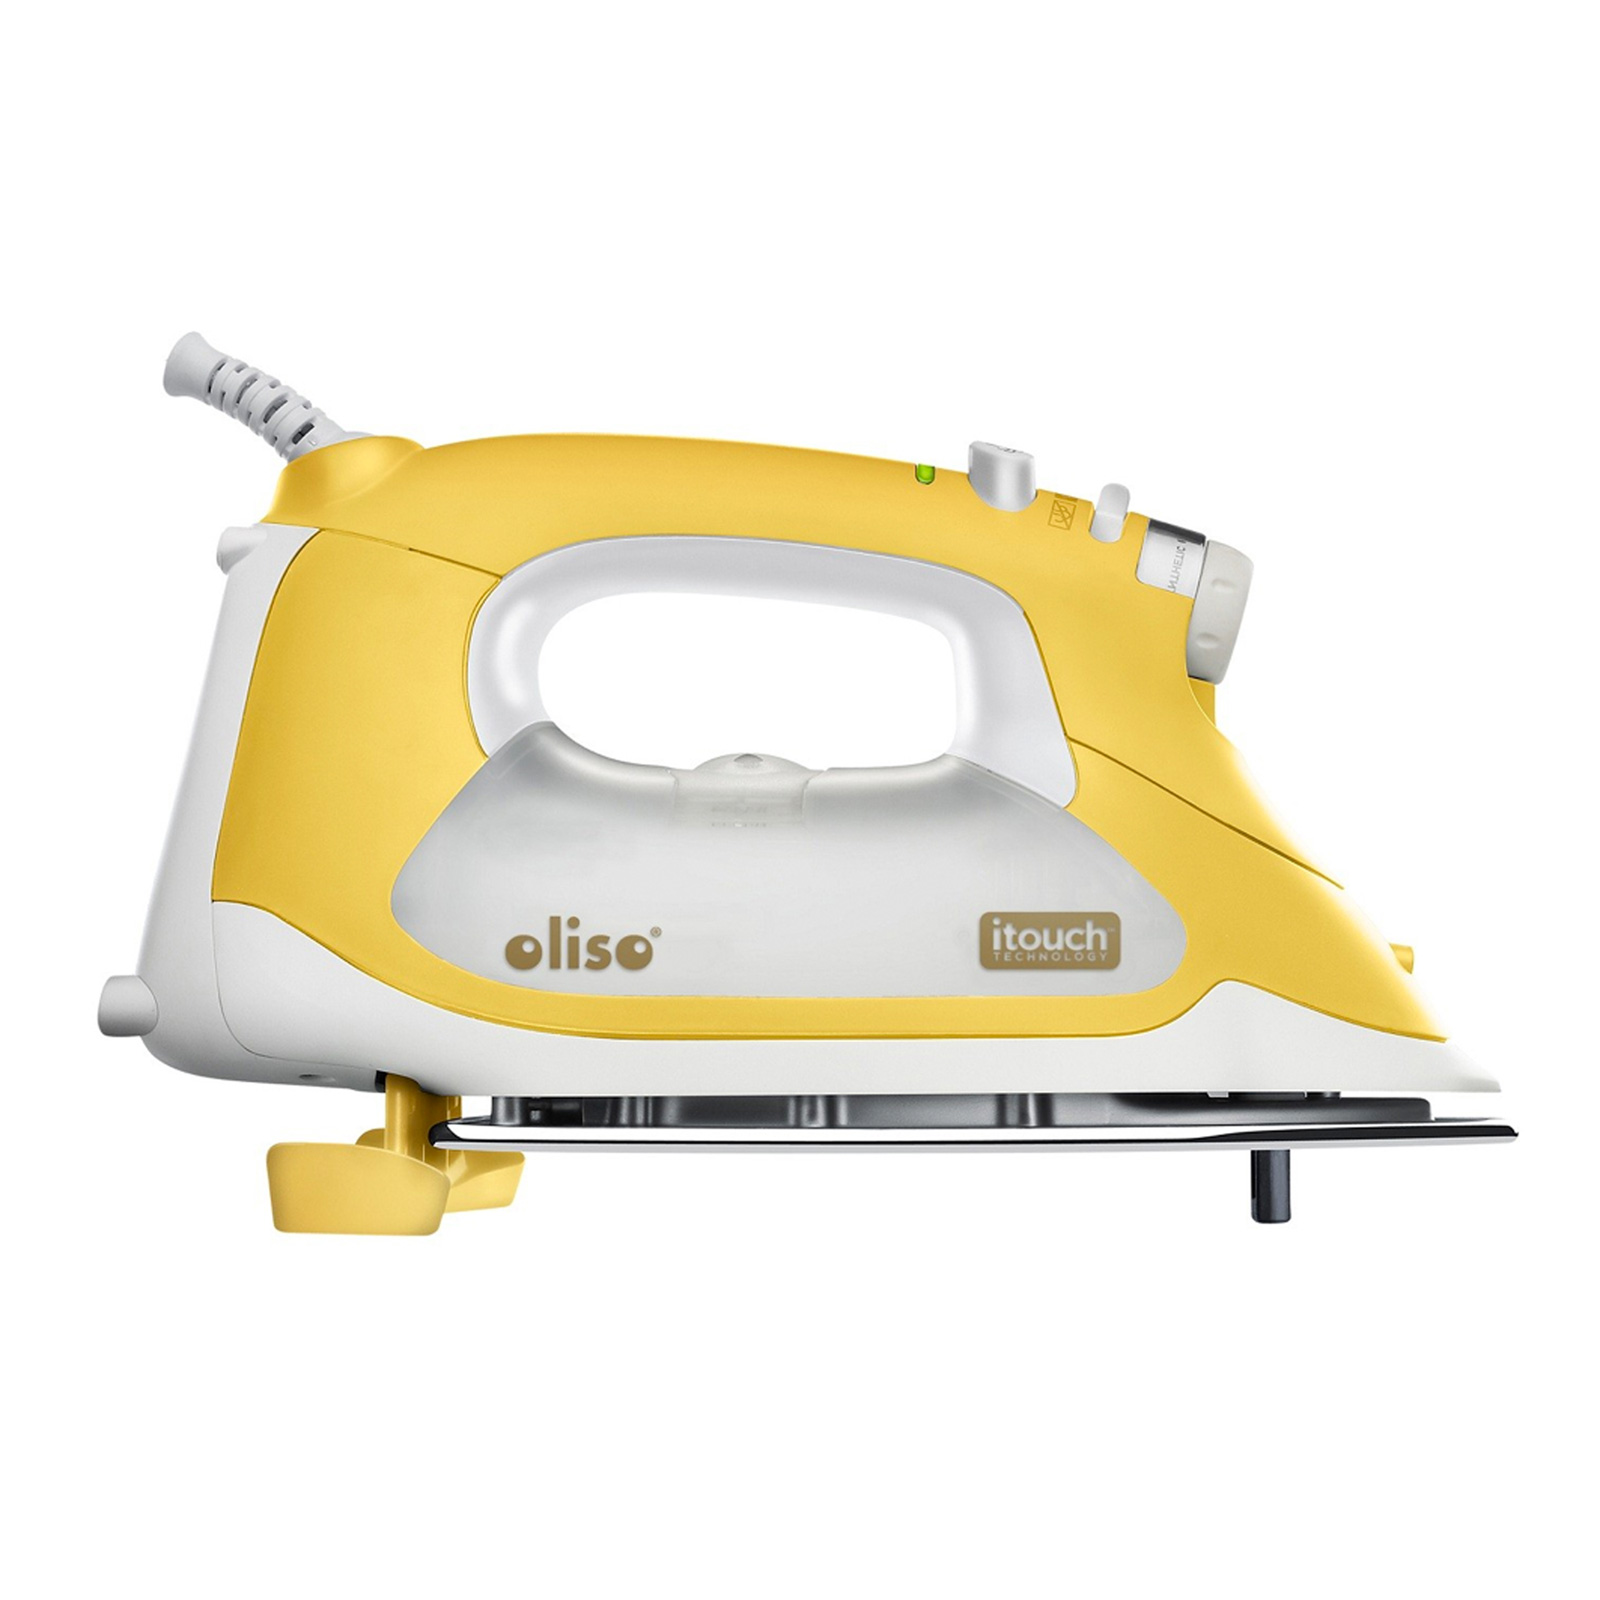 Oliso Pro Smart Iron with iTouch Technology Multi TG1600